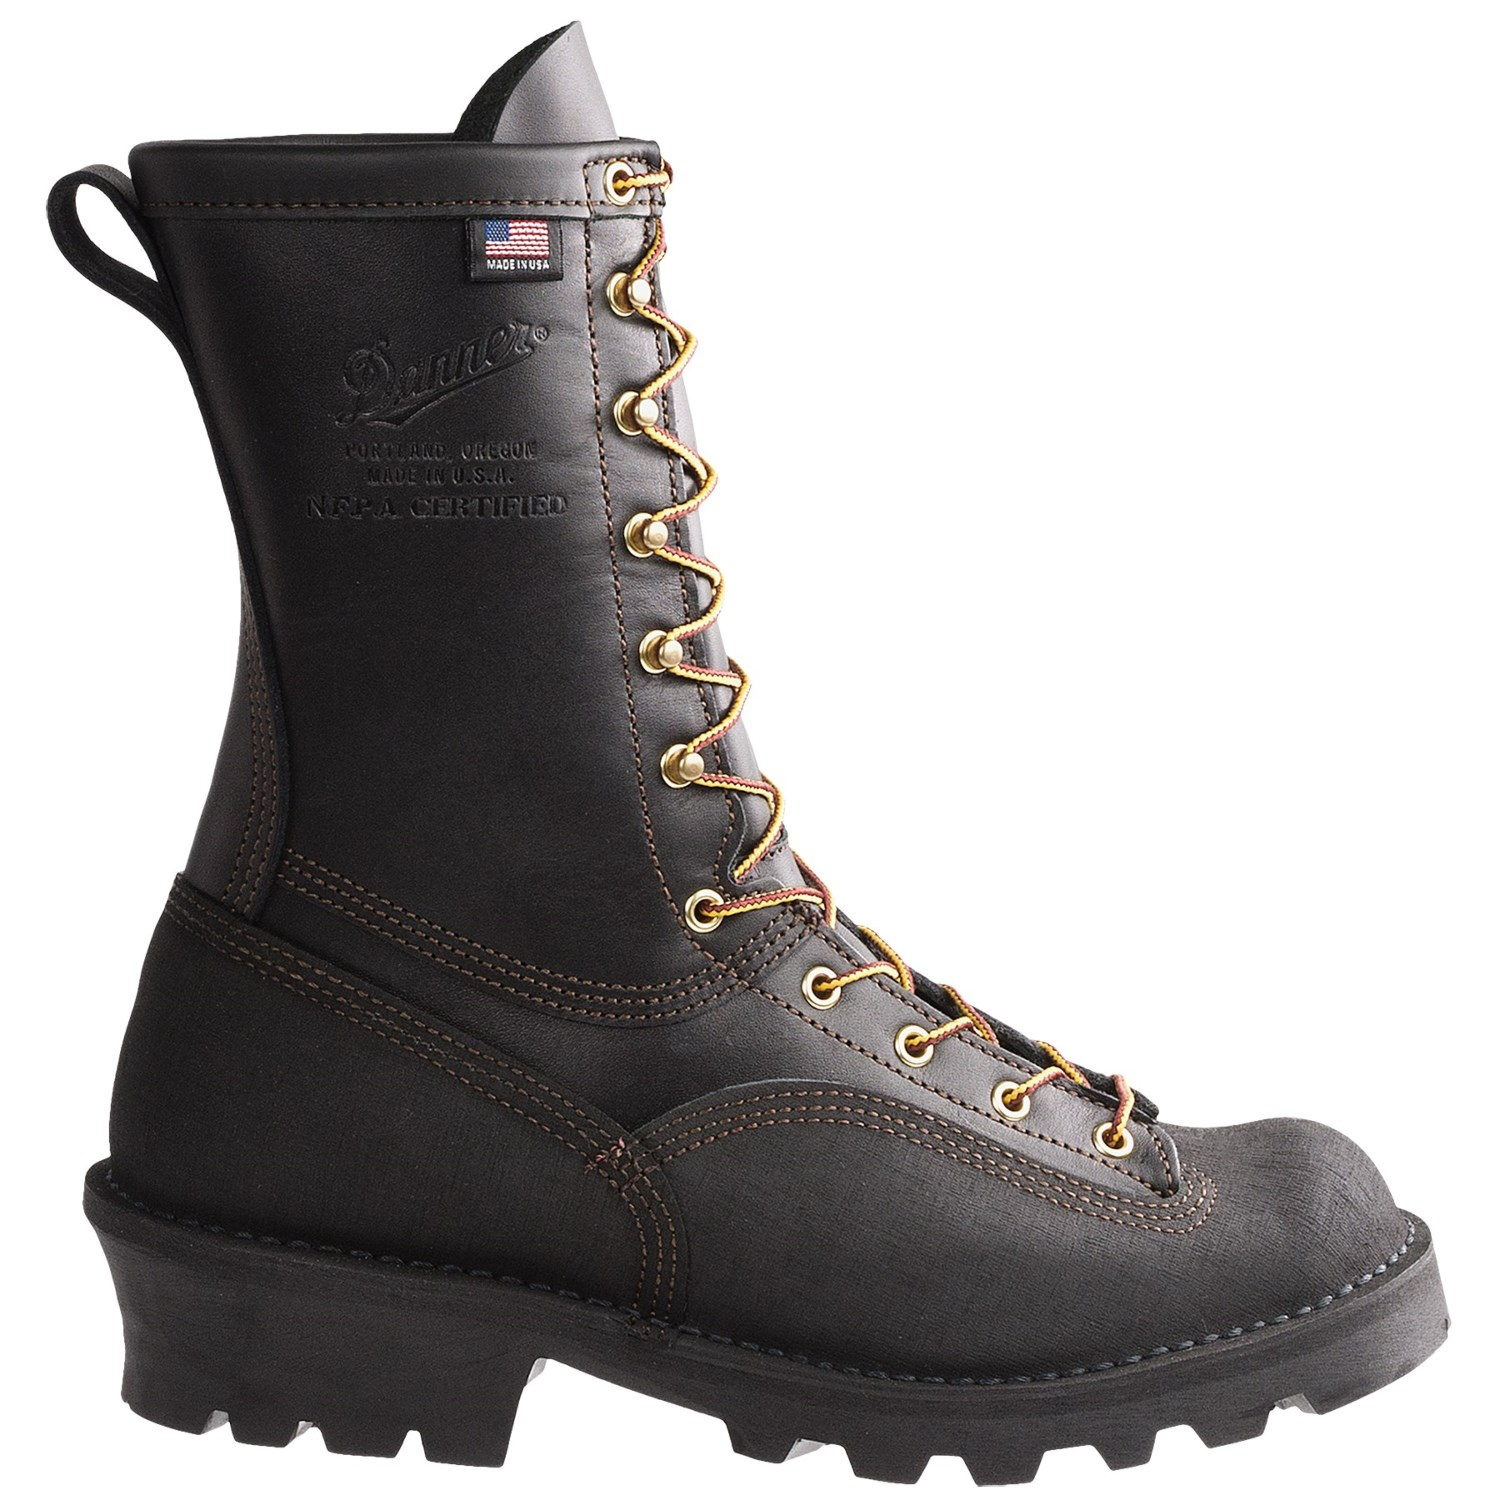 Danner Flashpoint Ii 10 Fire Work Boots For Women 6320v